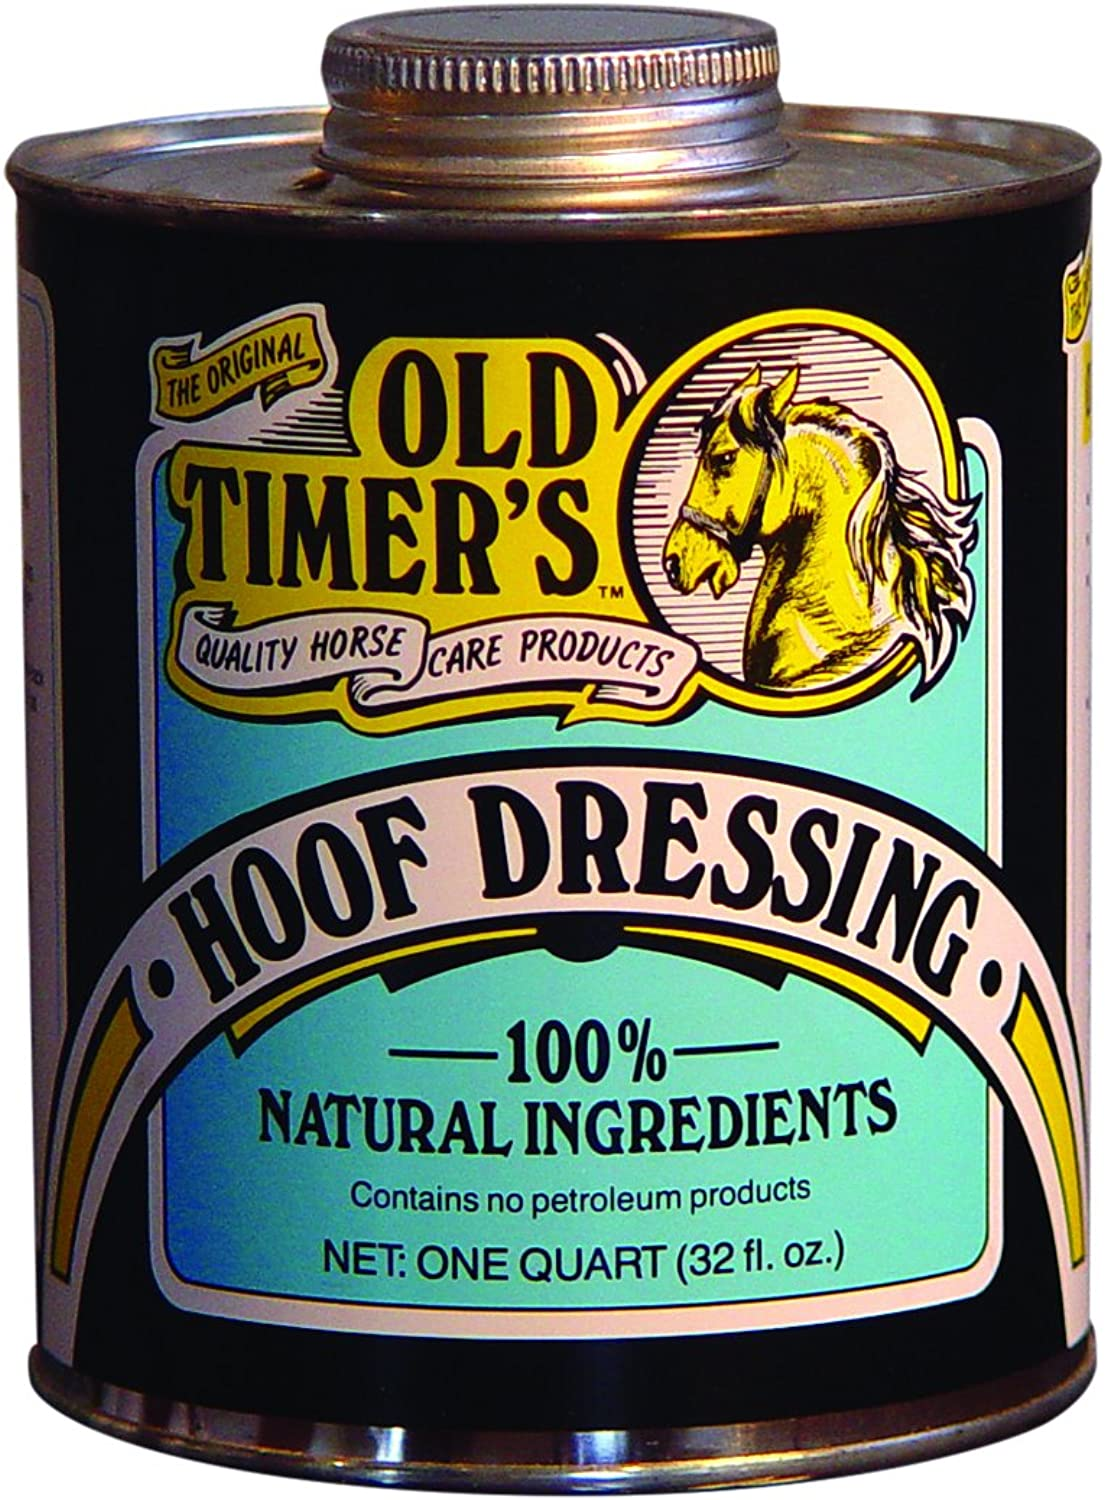 HEALTHY HAIRCARE PRODUCT Old Timers Hoof Dressing, 32 OZ